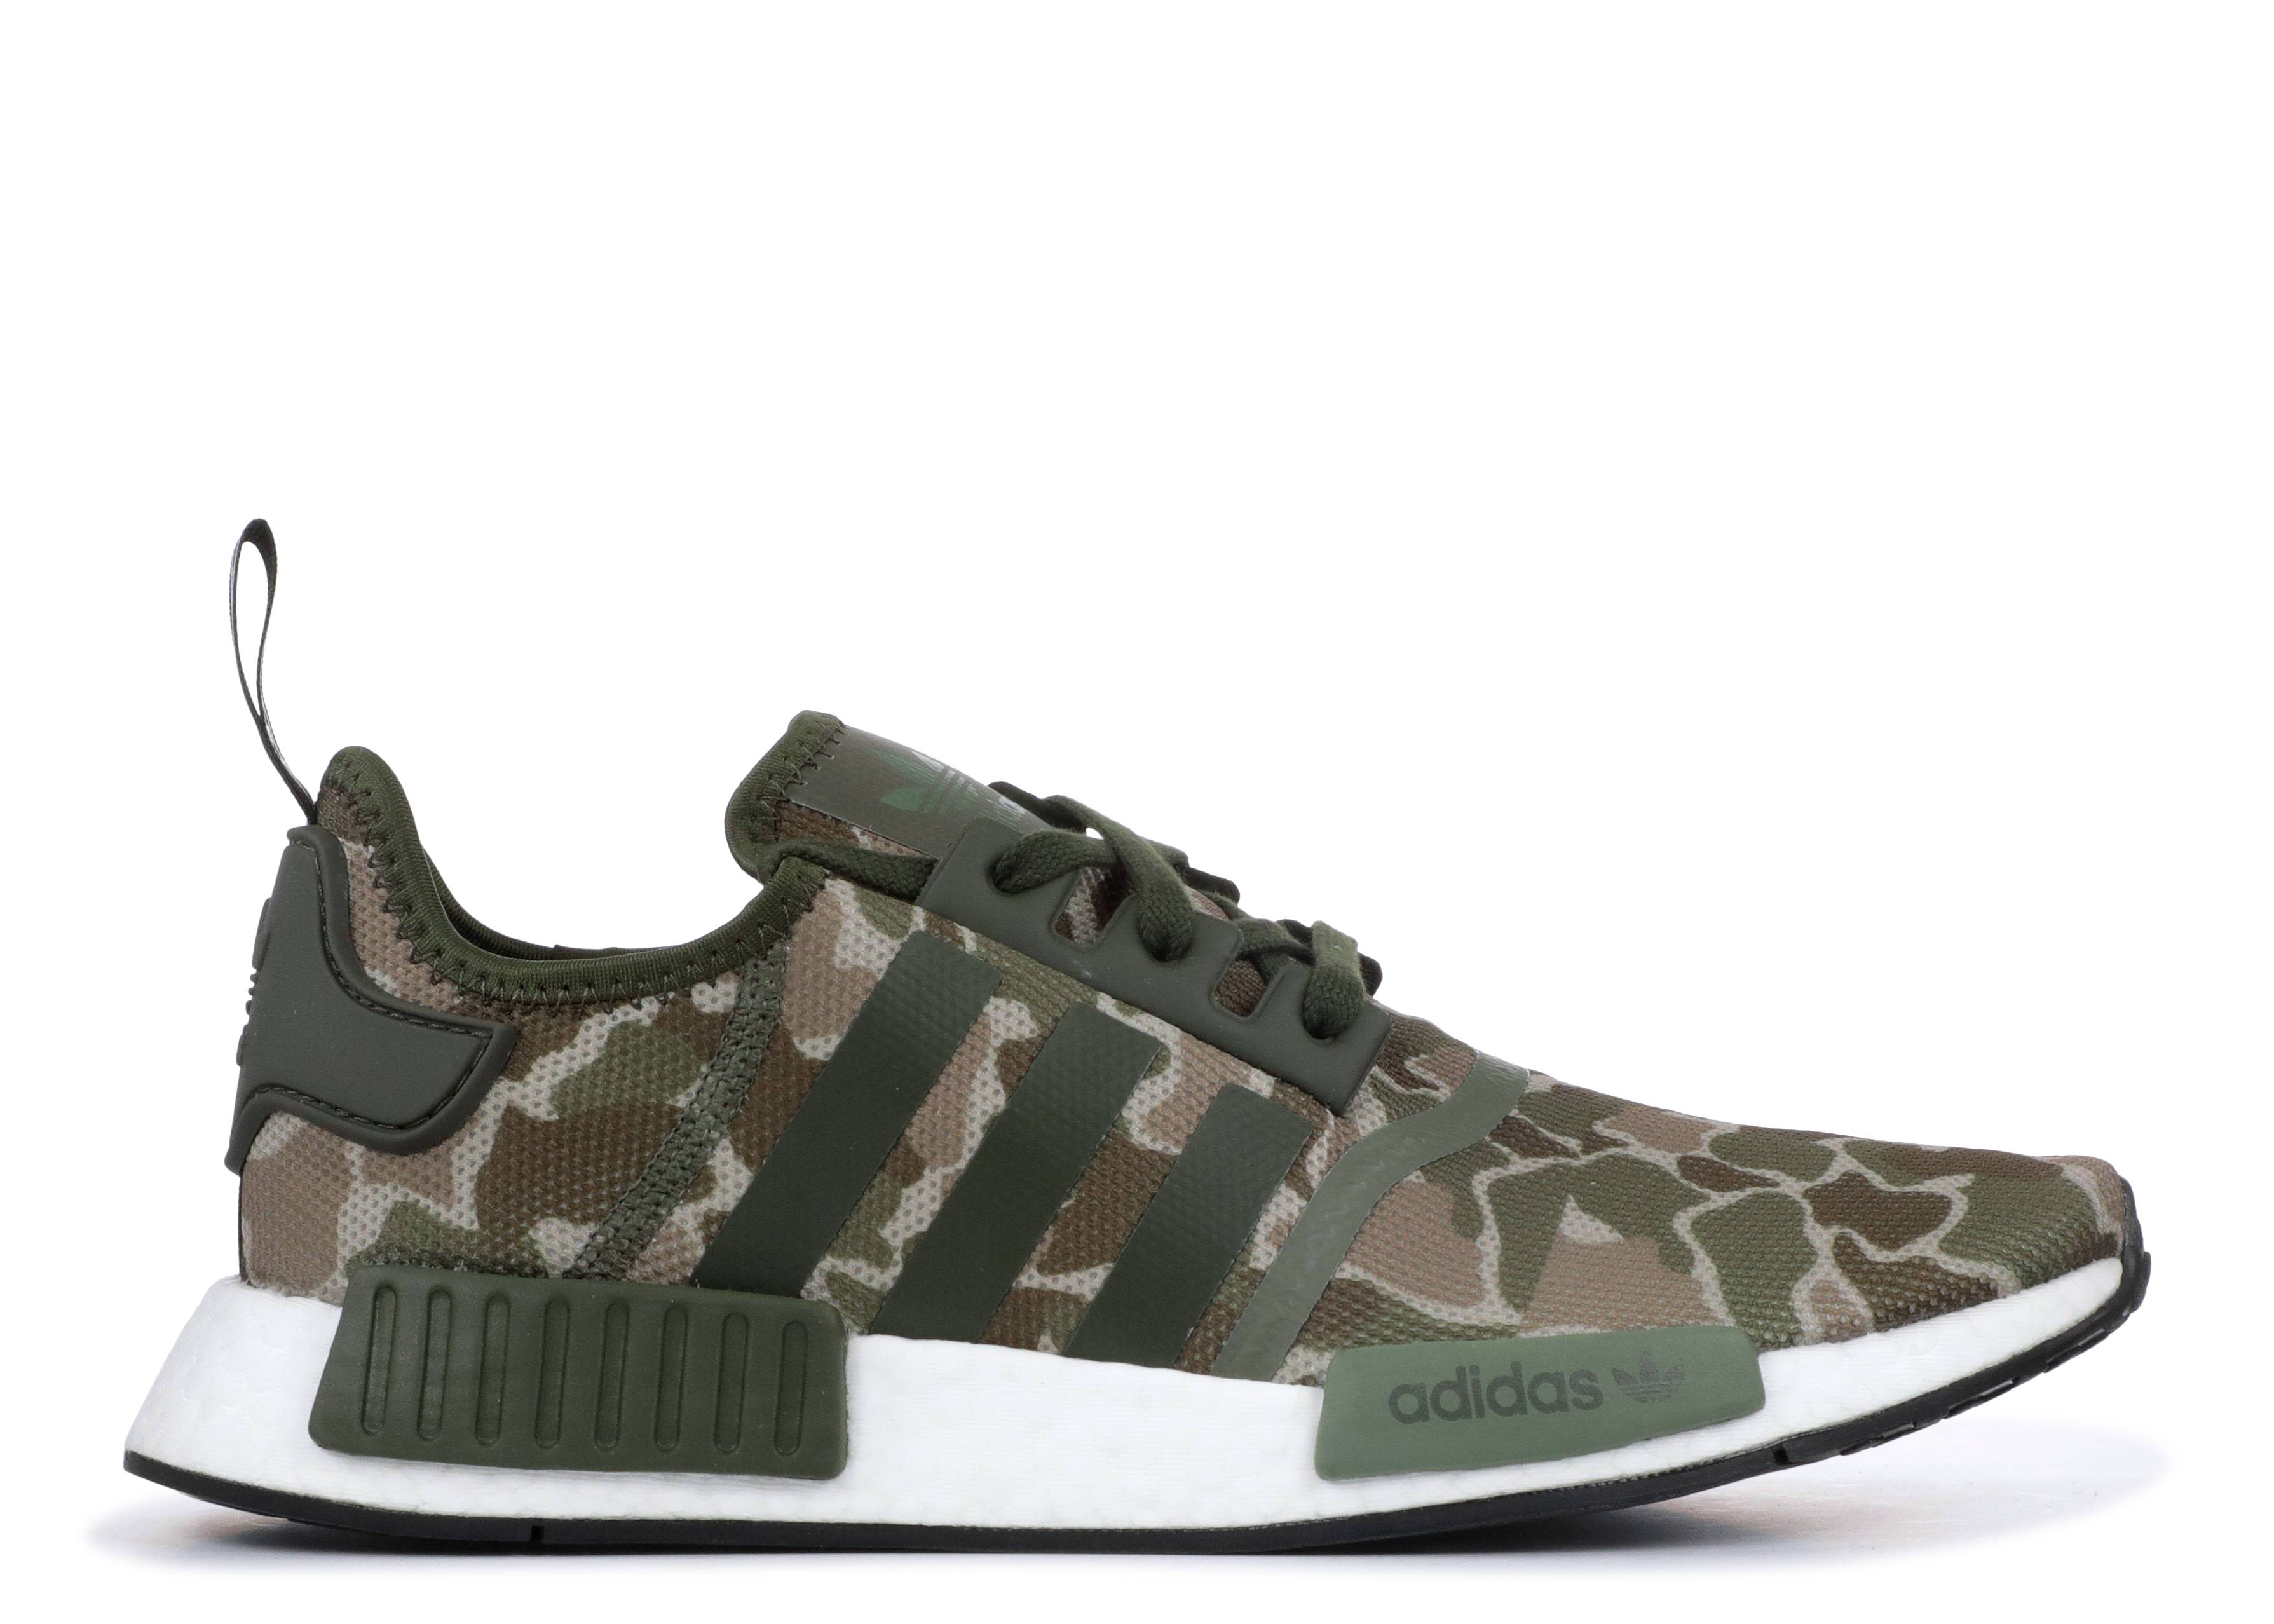 78d495376 Nmd R1 - Adidas - d96617 - sesame trace cargo base green